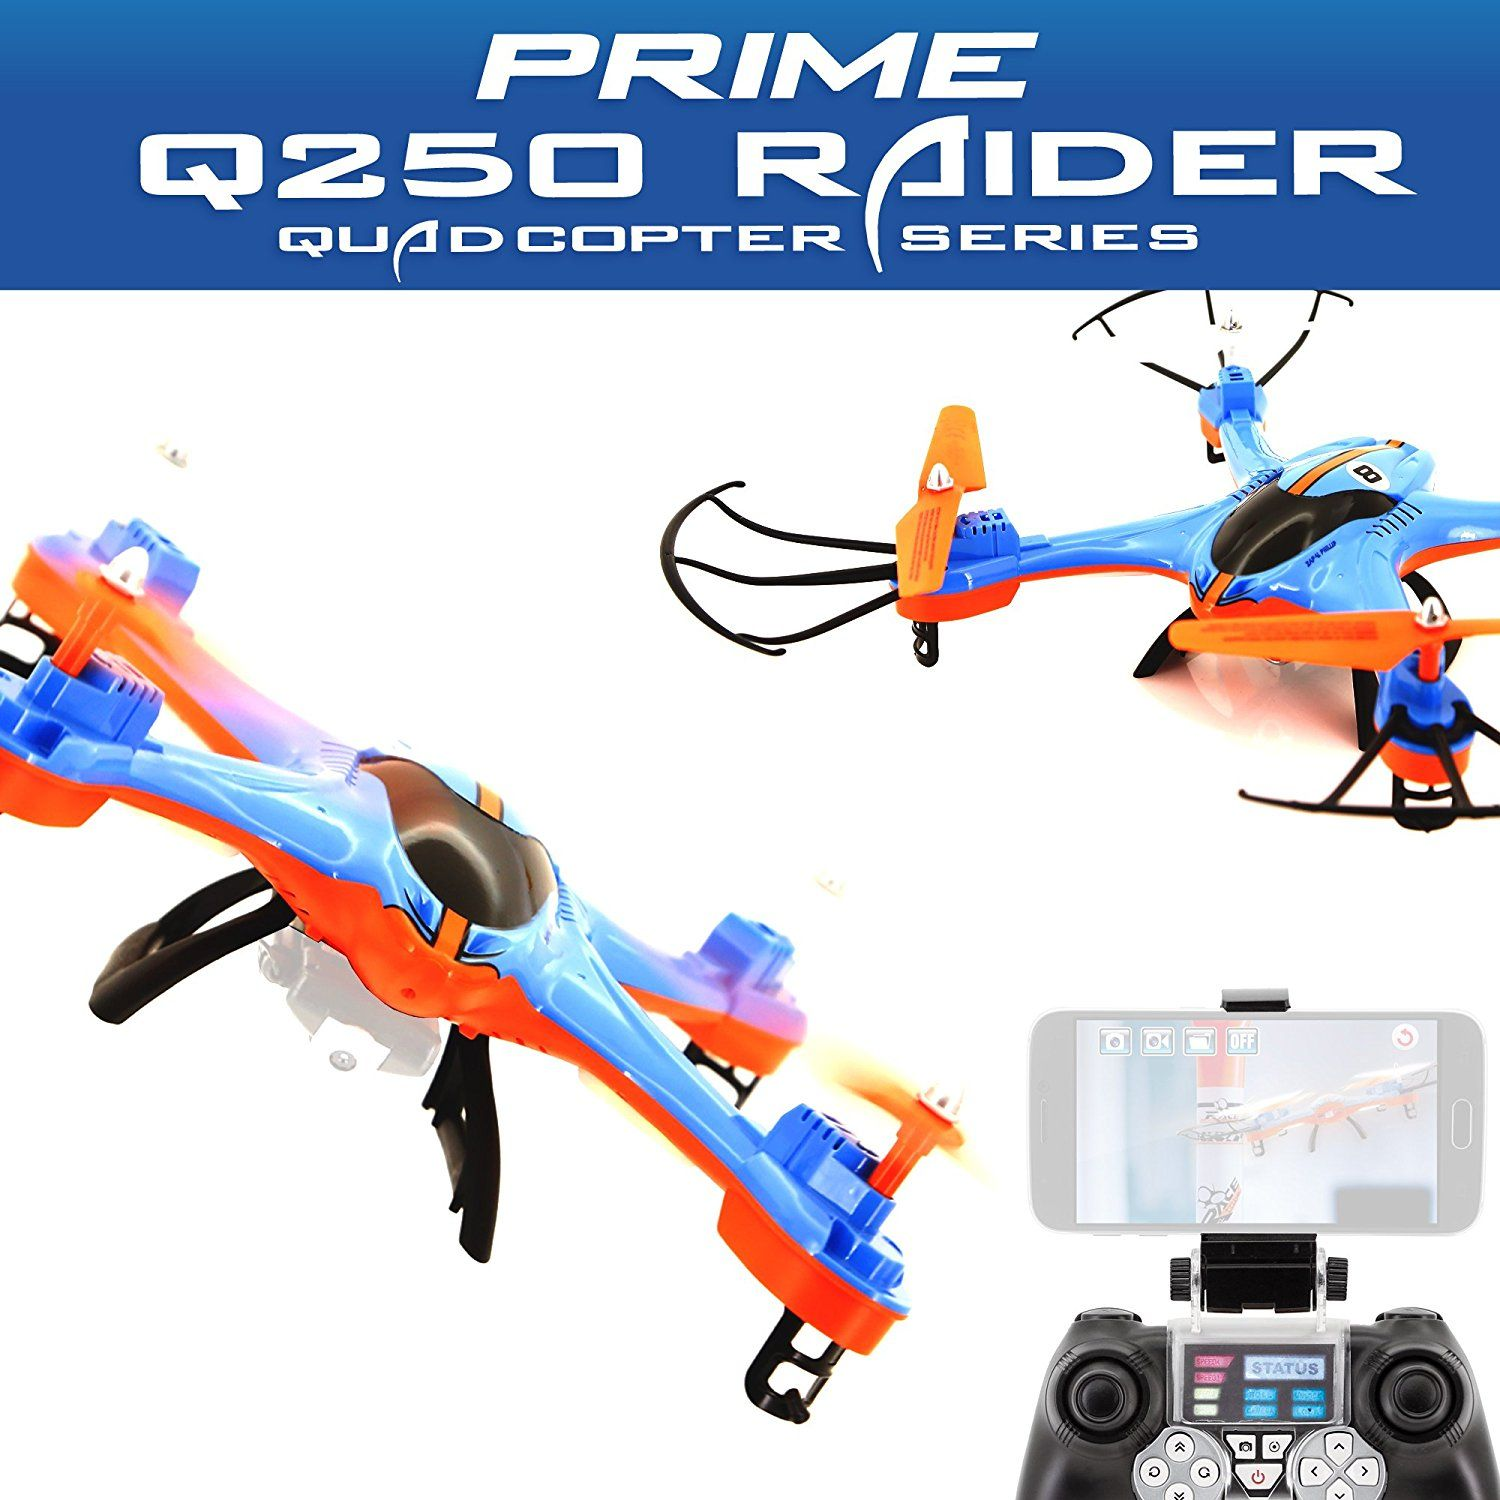 ACME Quadrocopter zoopa Prime Q250 Raider mit Wifi Live Videotransmiss<wbr/>ion